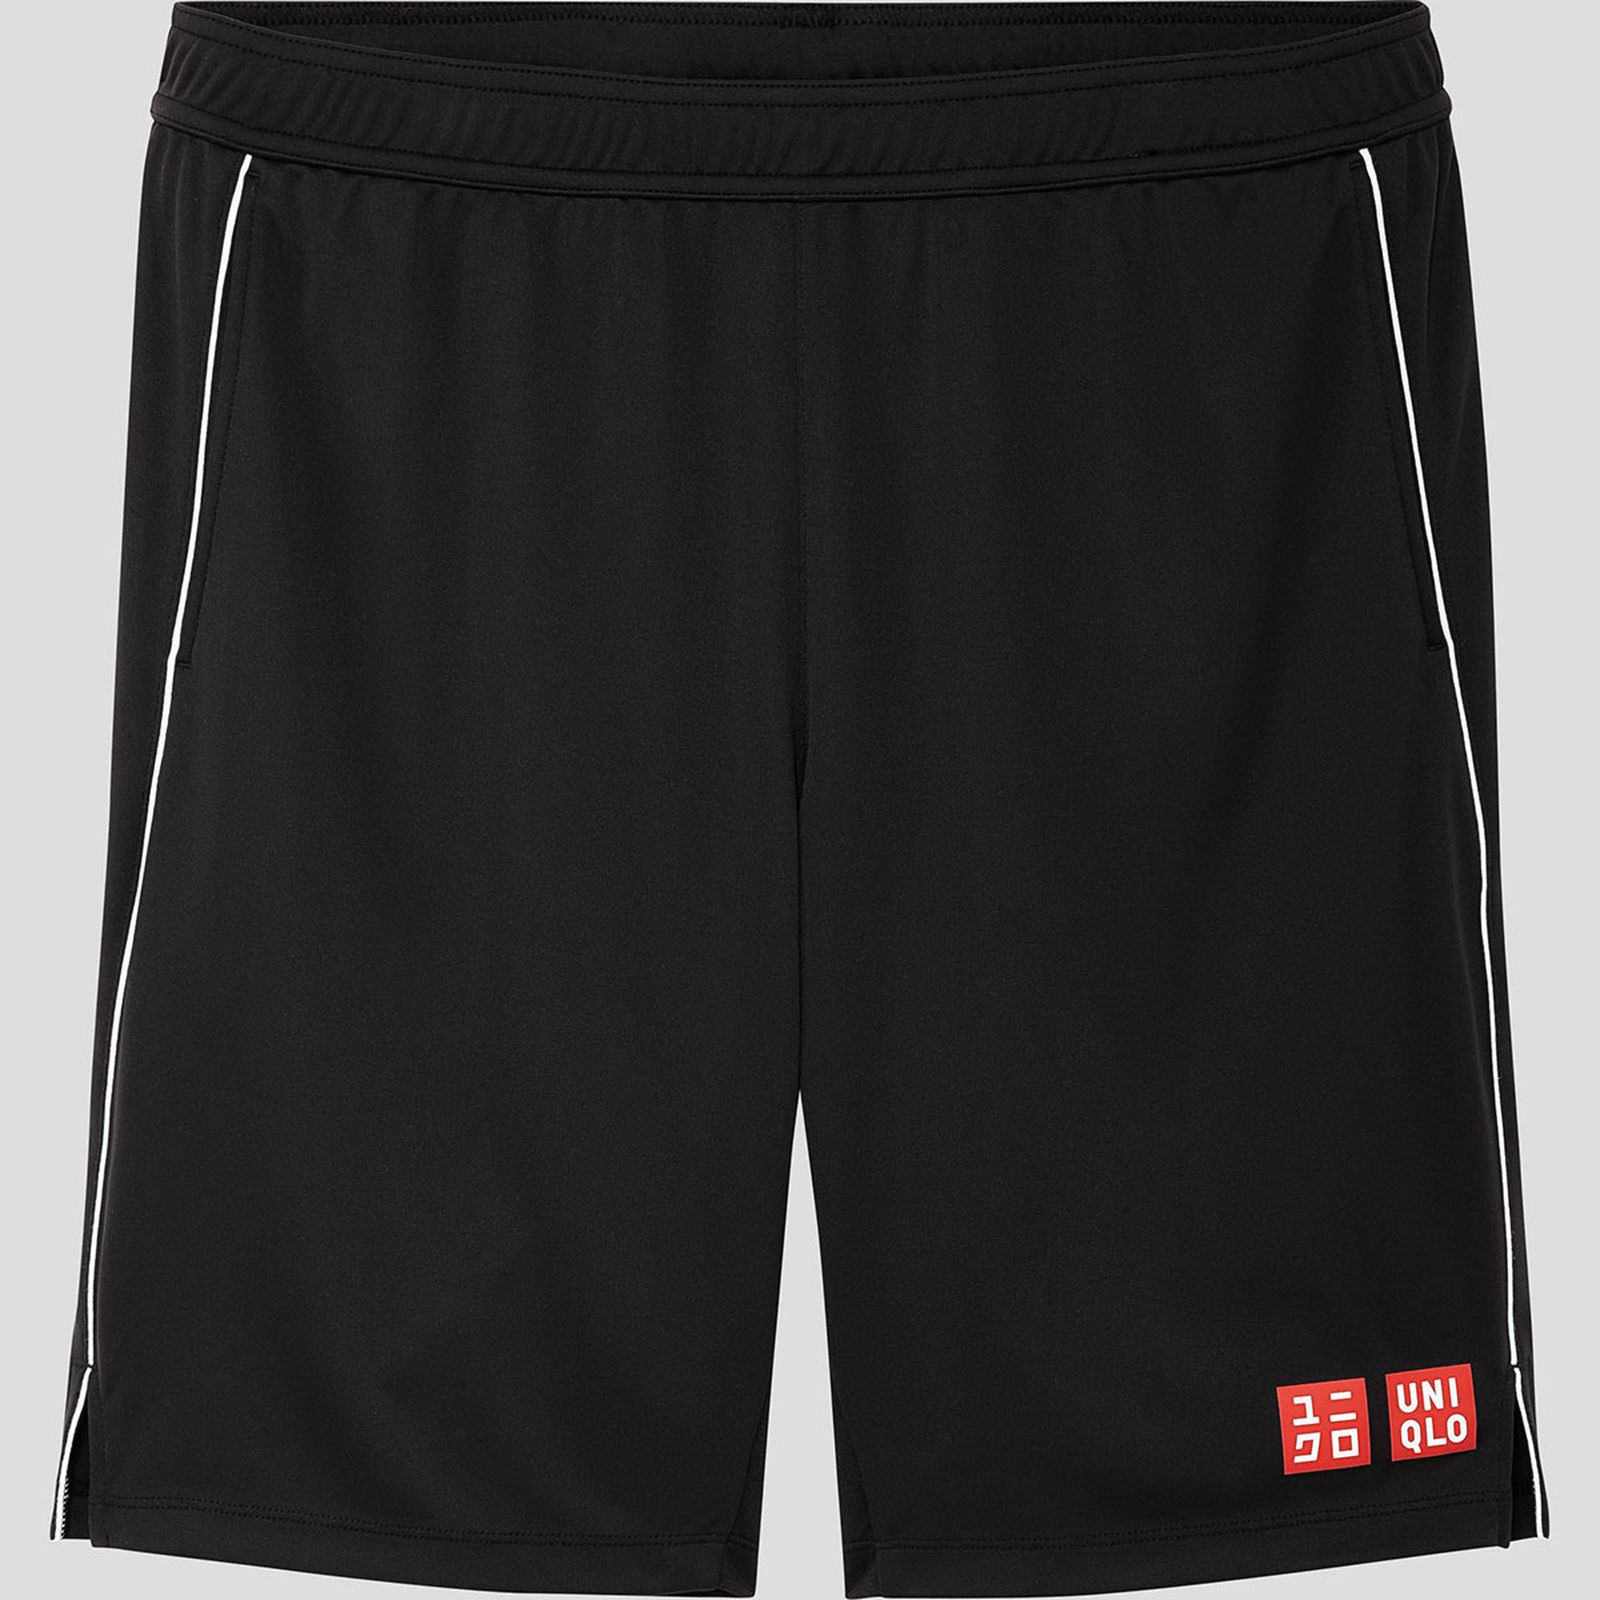 uniqlo roger federer us open collection